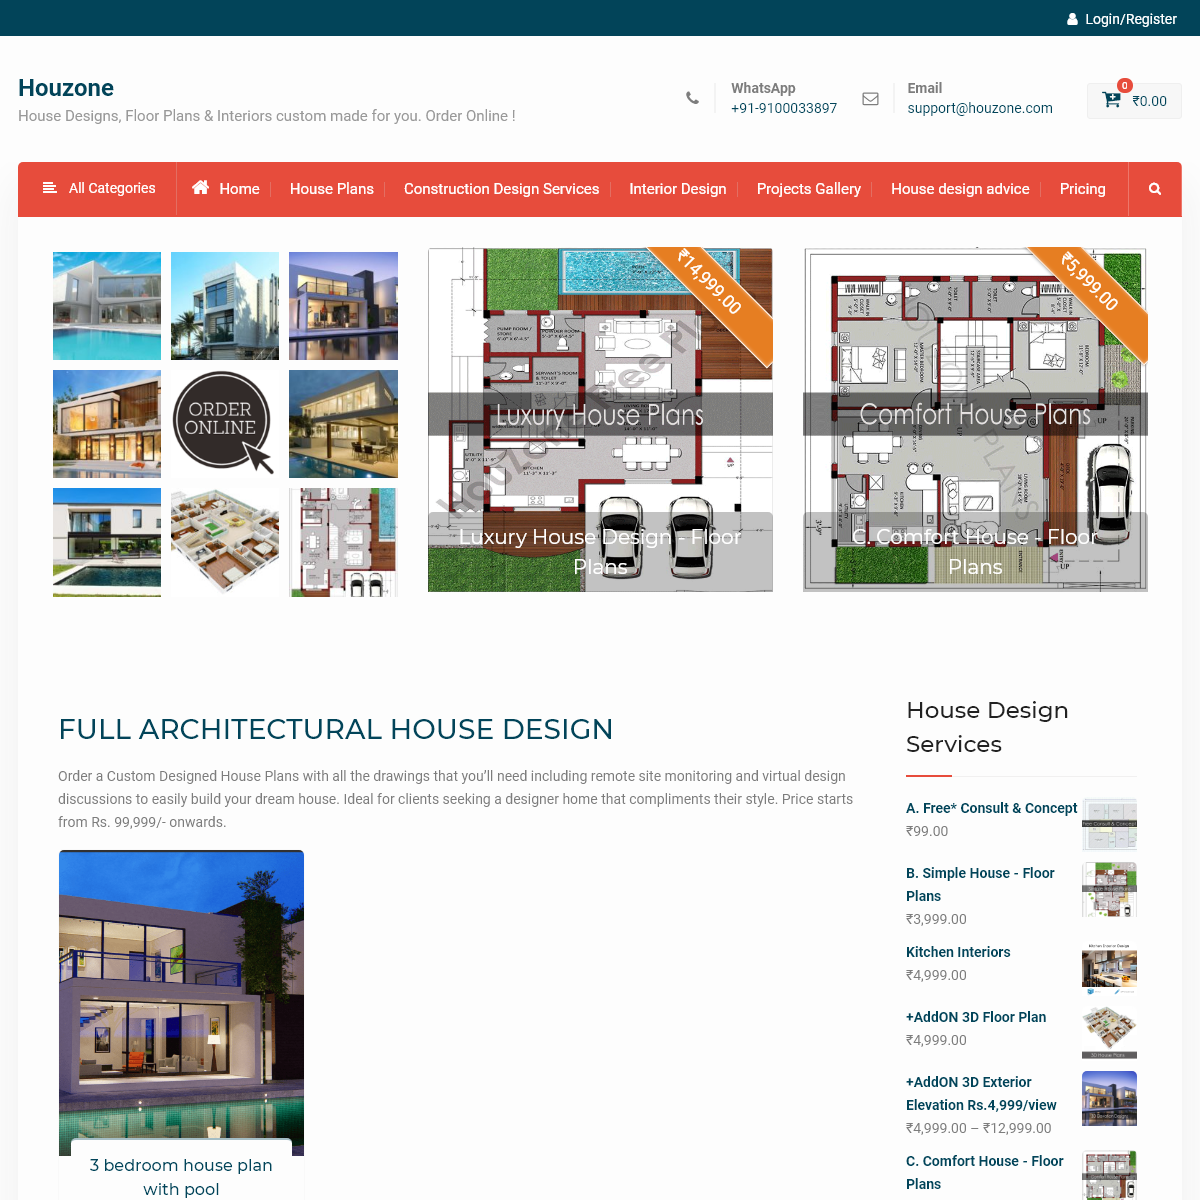 Houzone – House Designs, Floor Plans & Interiors custom made for you. Order Online !